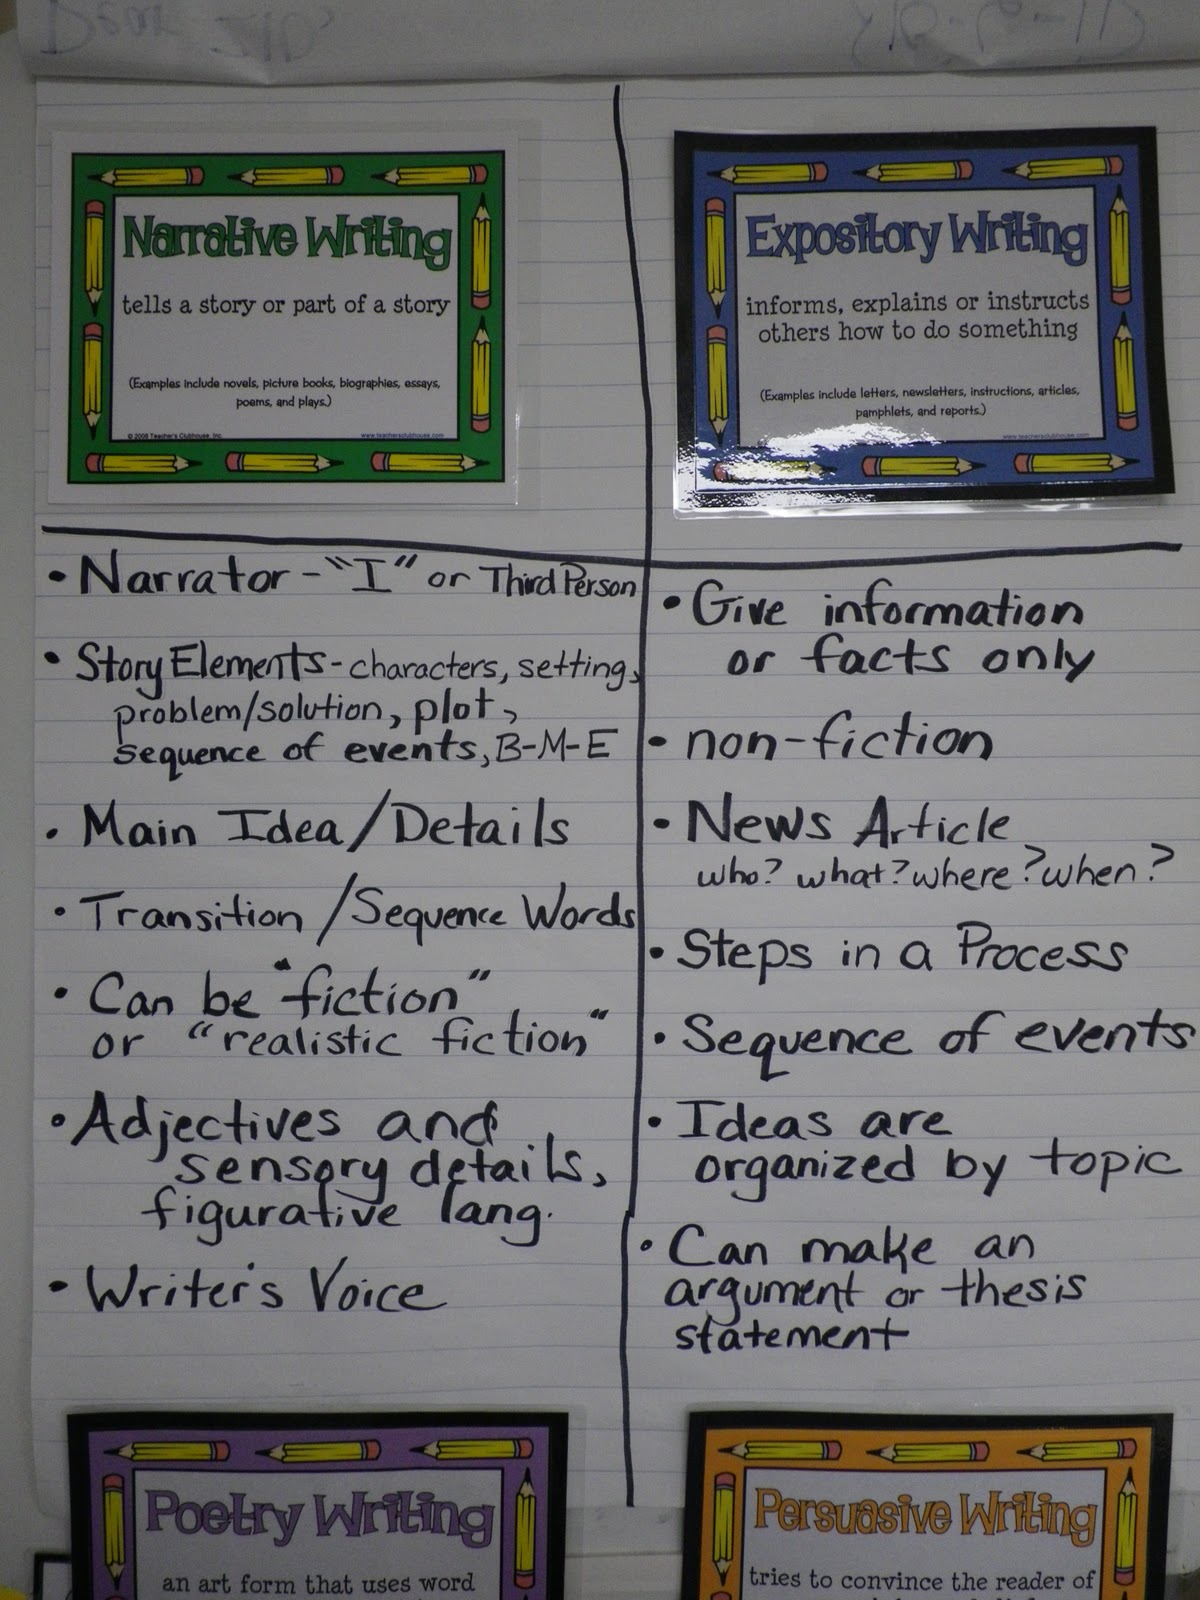 Topics for 5 paragraph essays for 4th grade